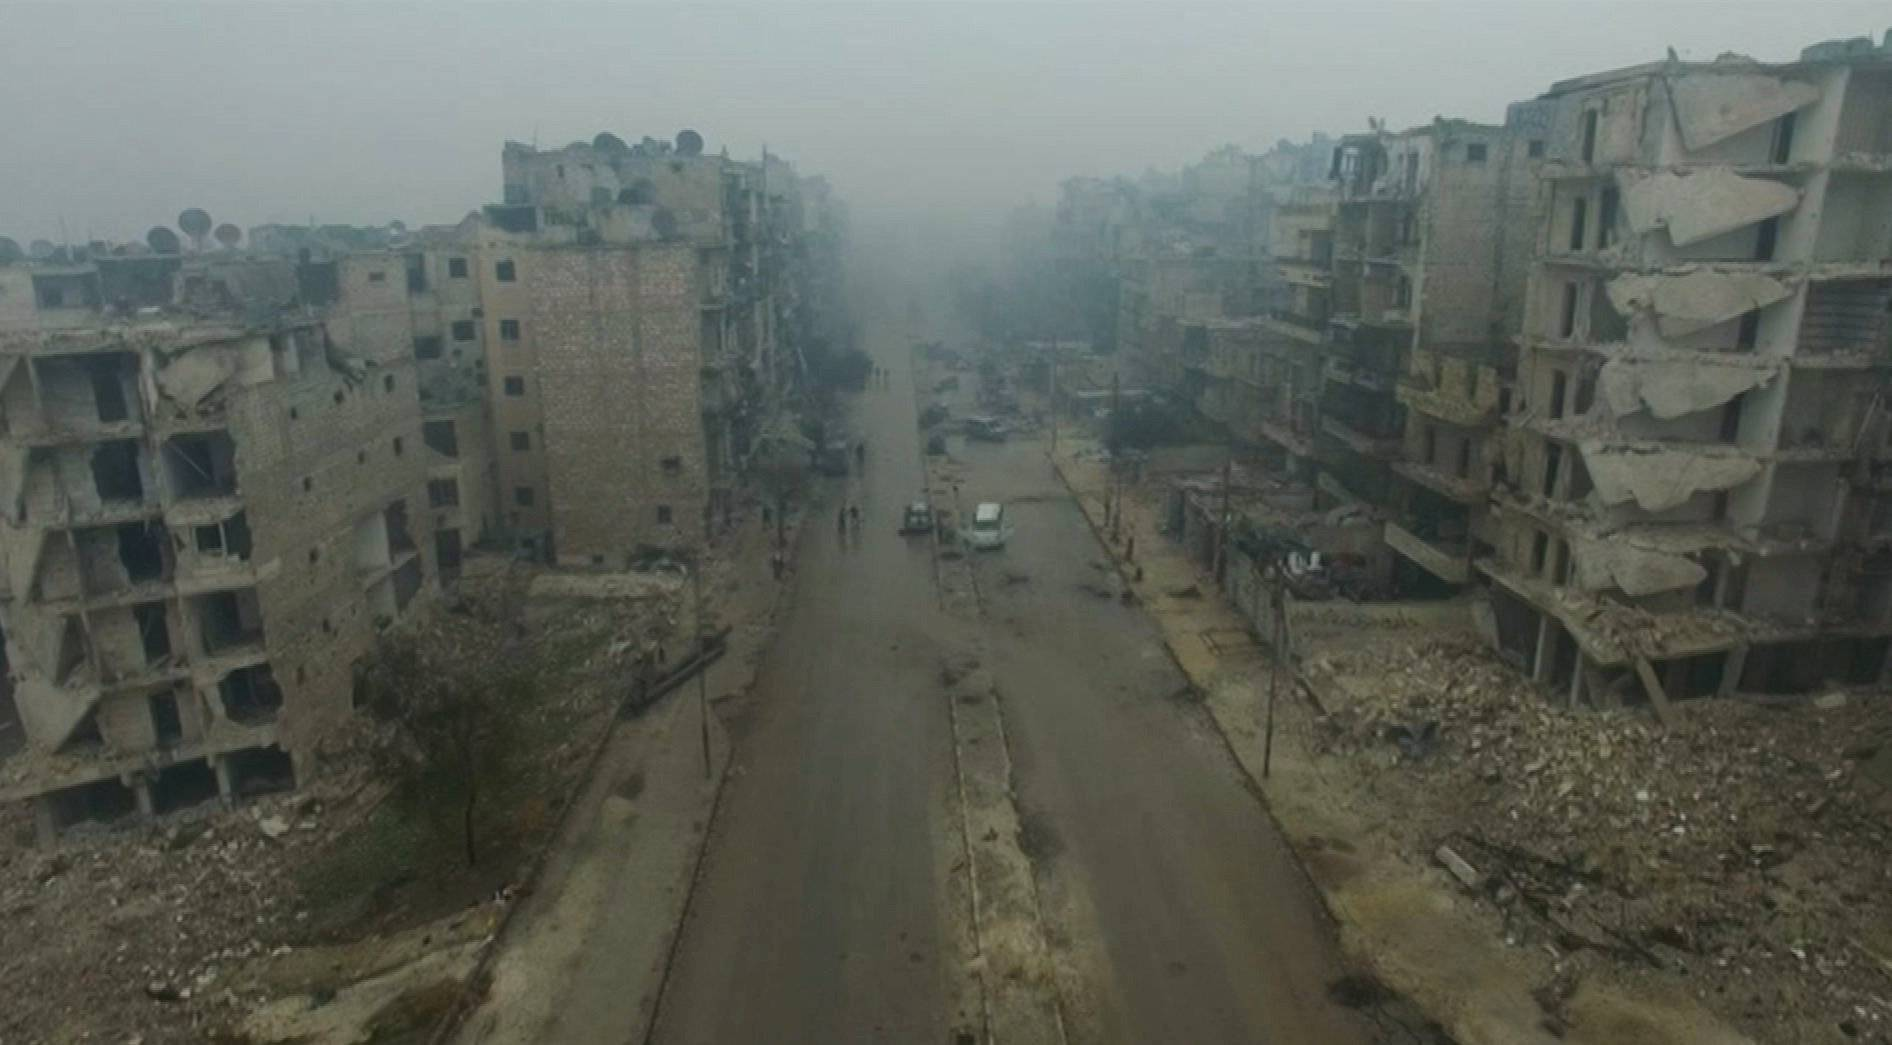 A still image from video taken December 13, 2016 of a general view of bomb damaged eastern Aleppo, Syria in the rain